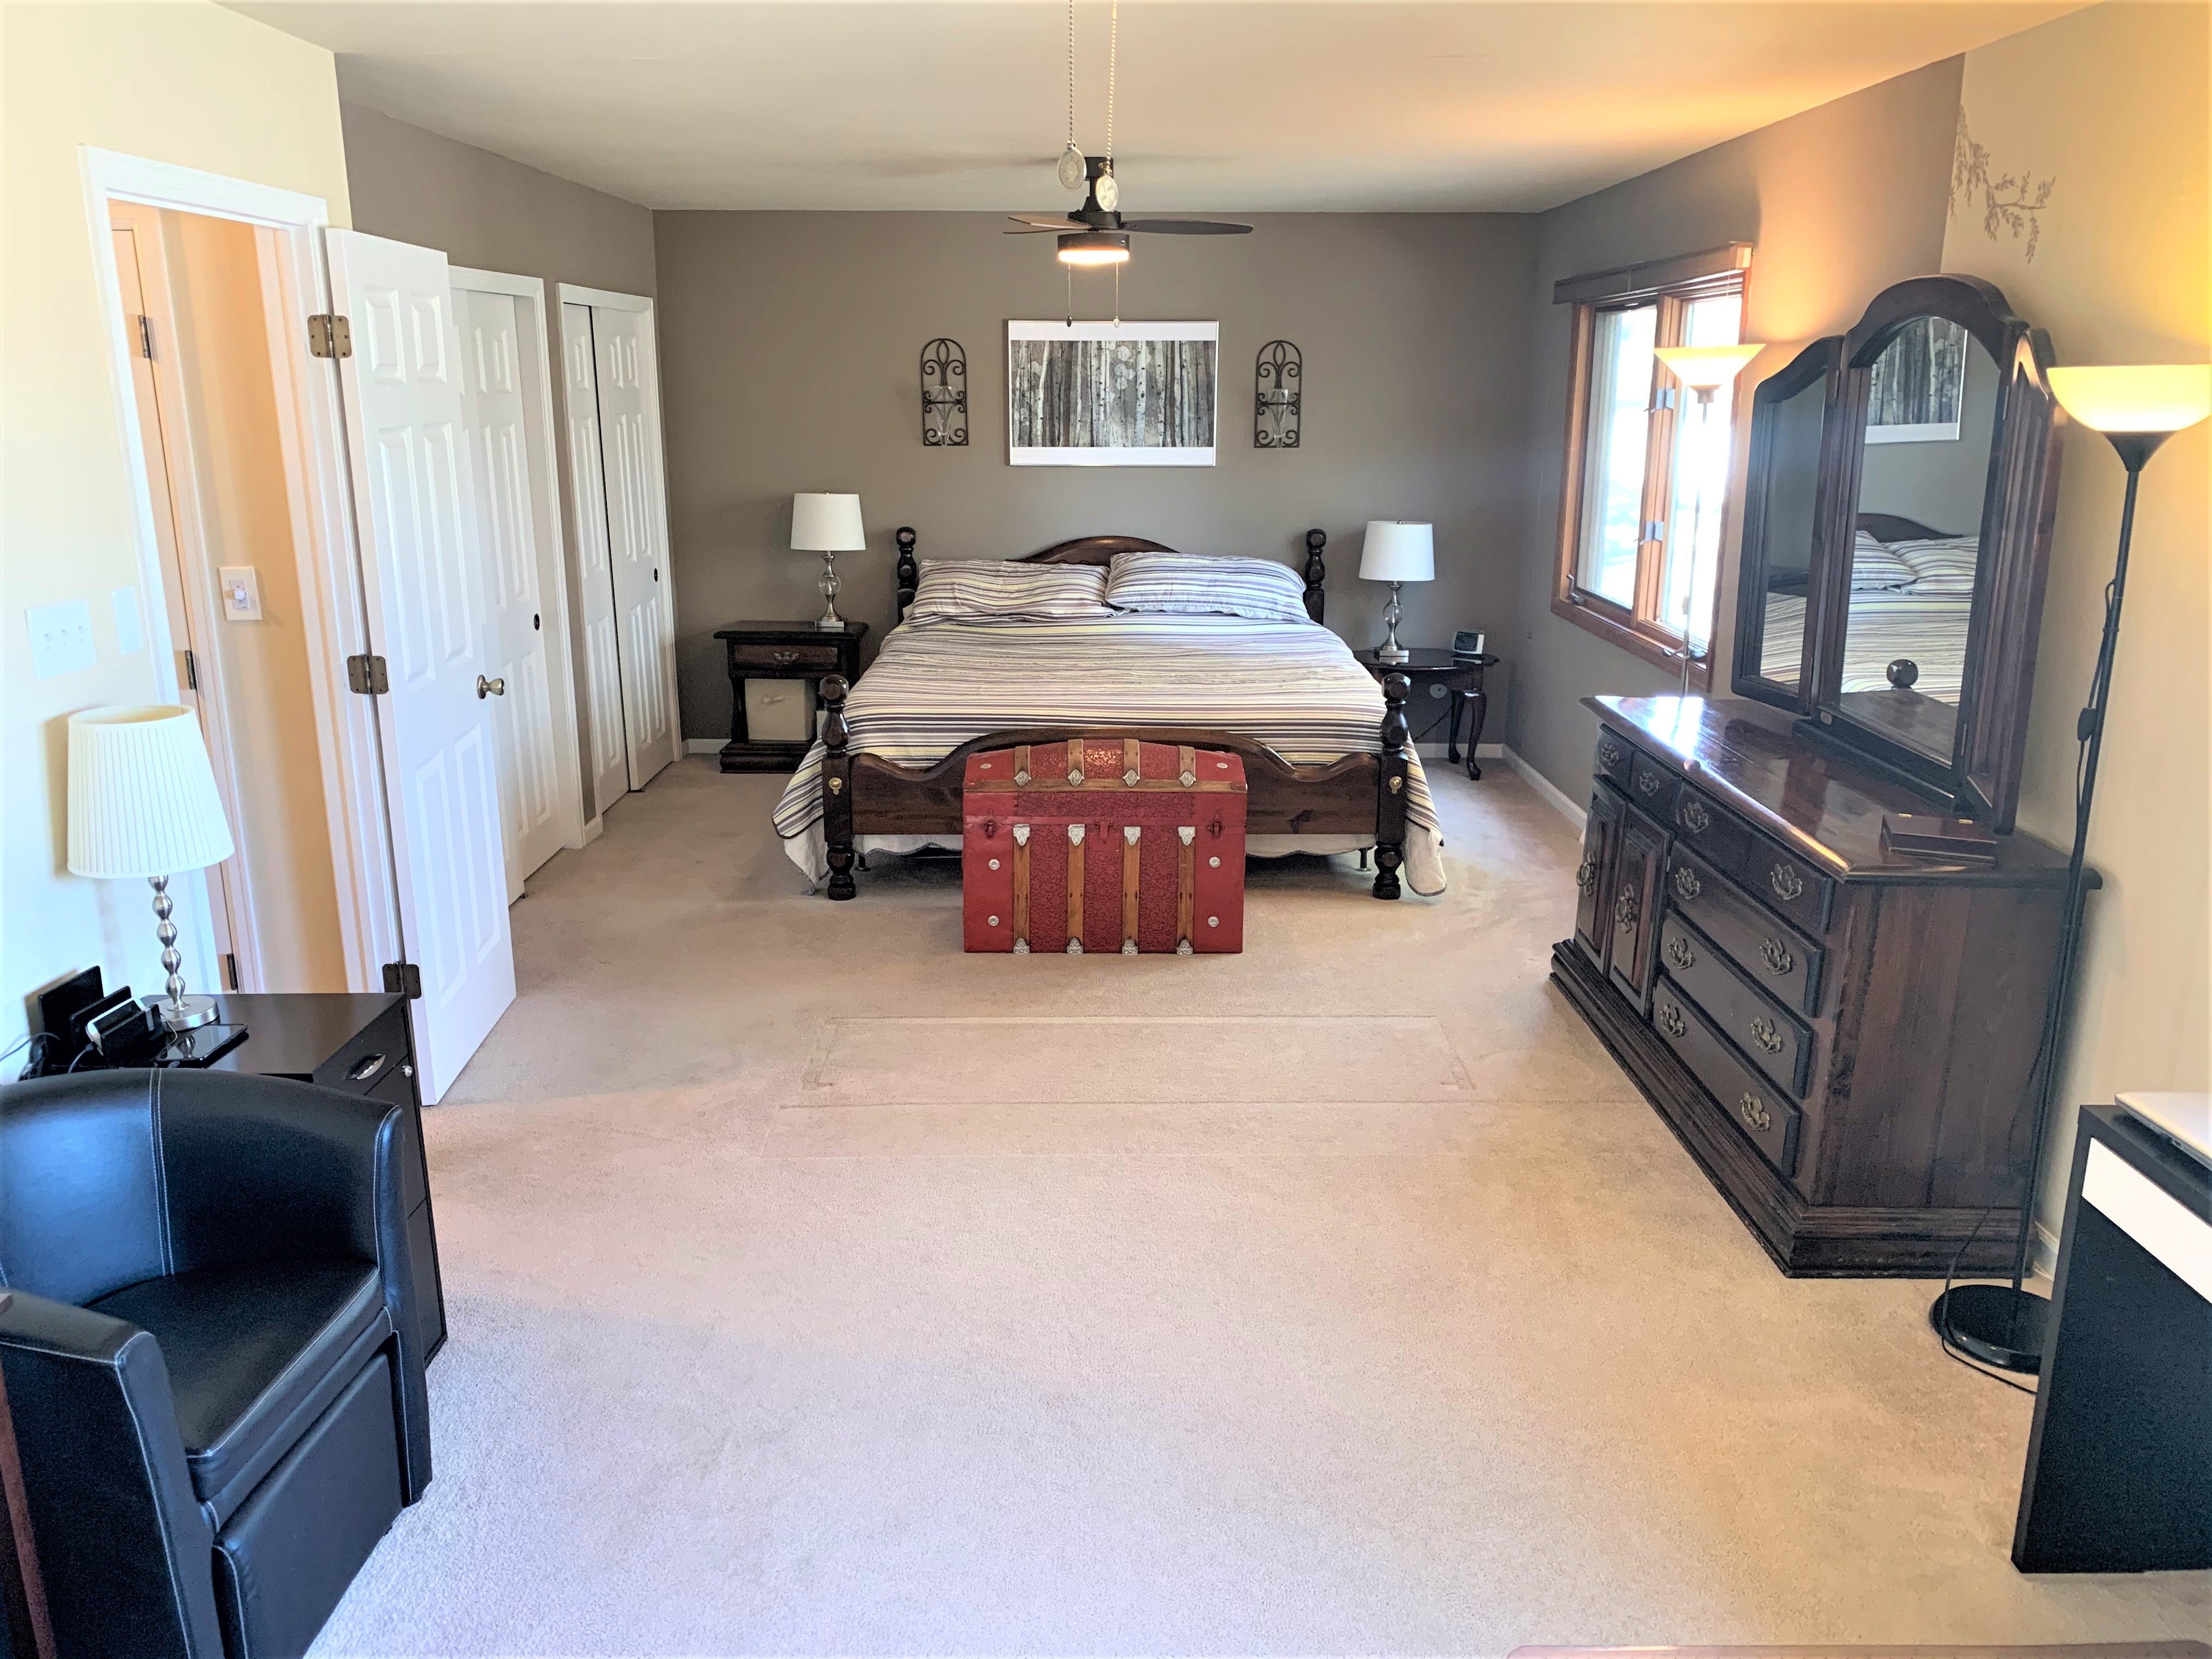 2 Bedrooms Converted to Huge Master